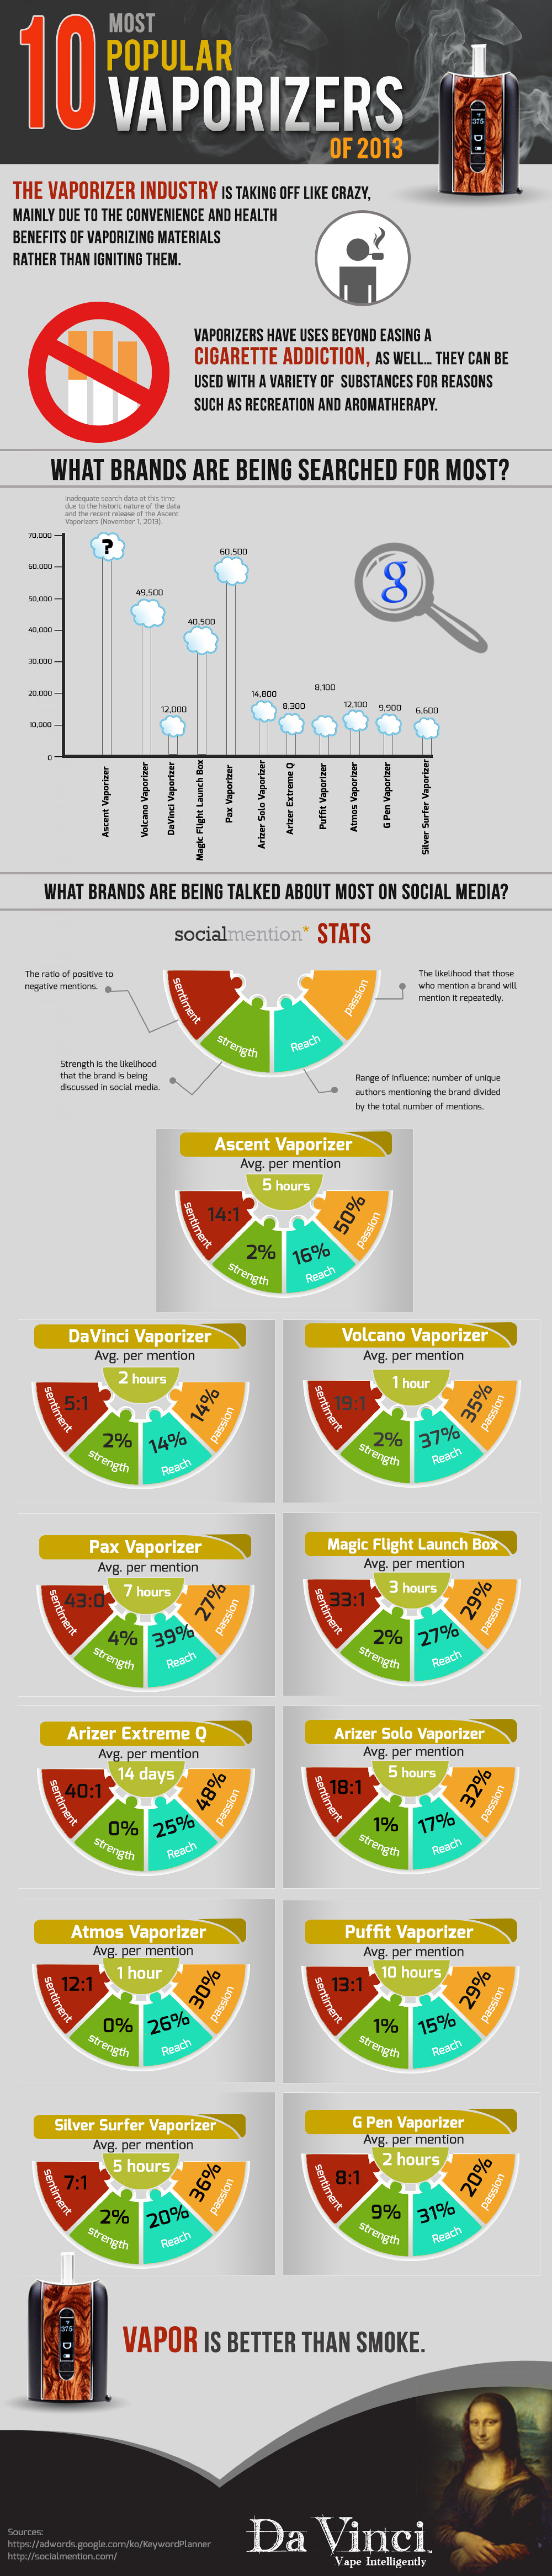 10 Most Popular Vaporizers of 2013 Infographic